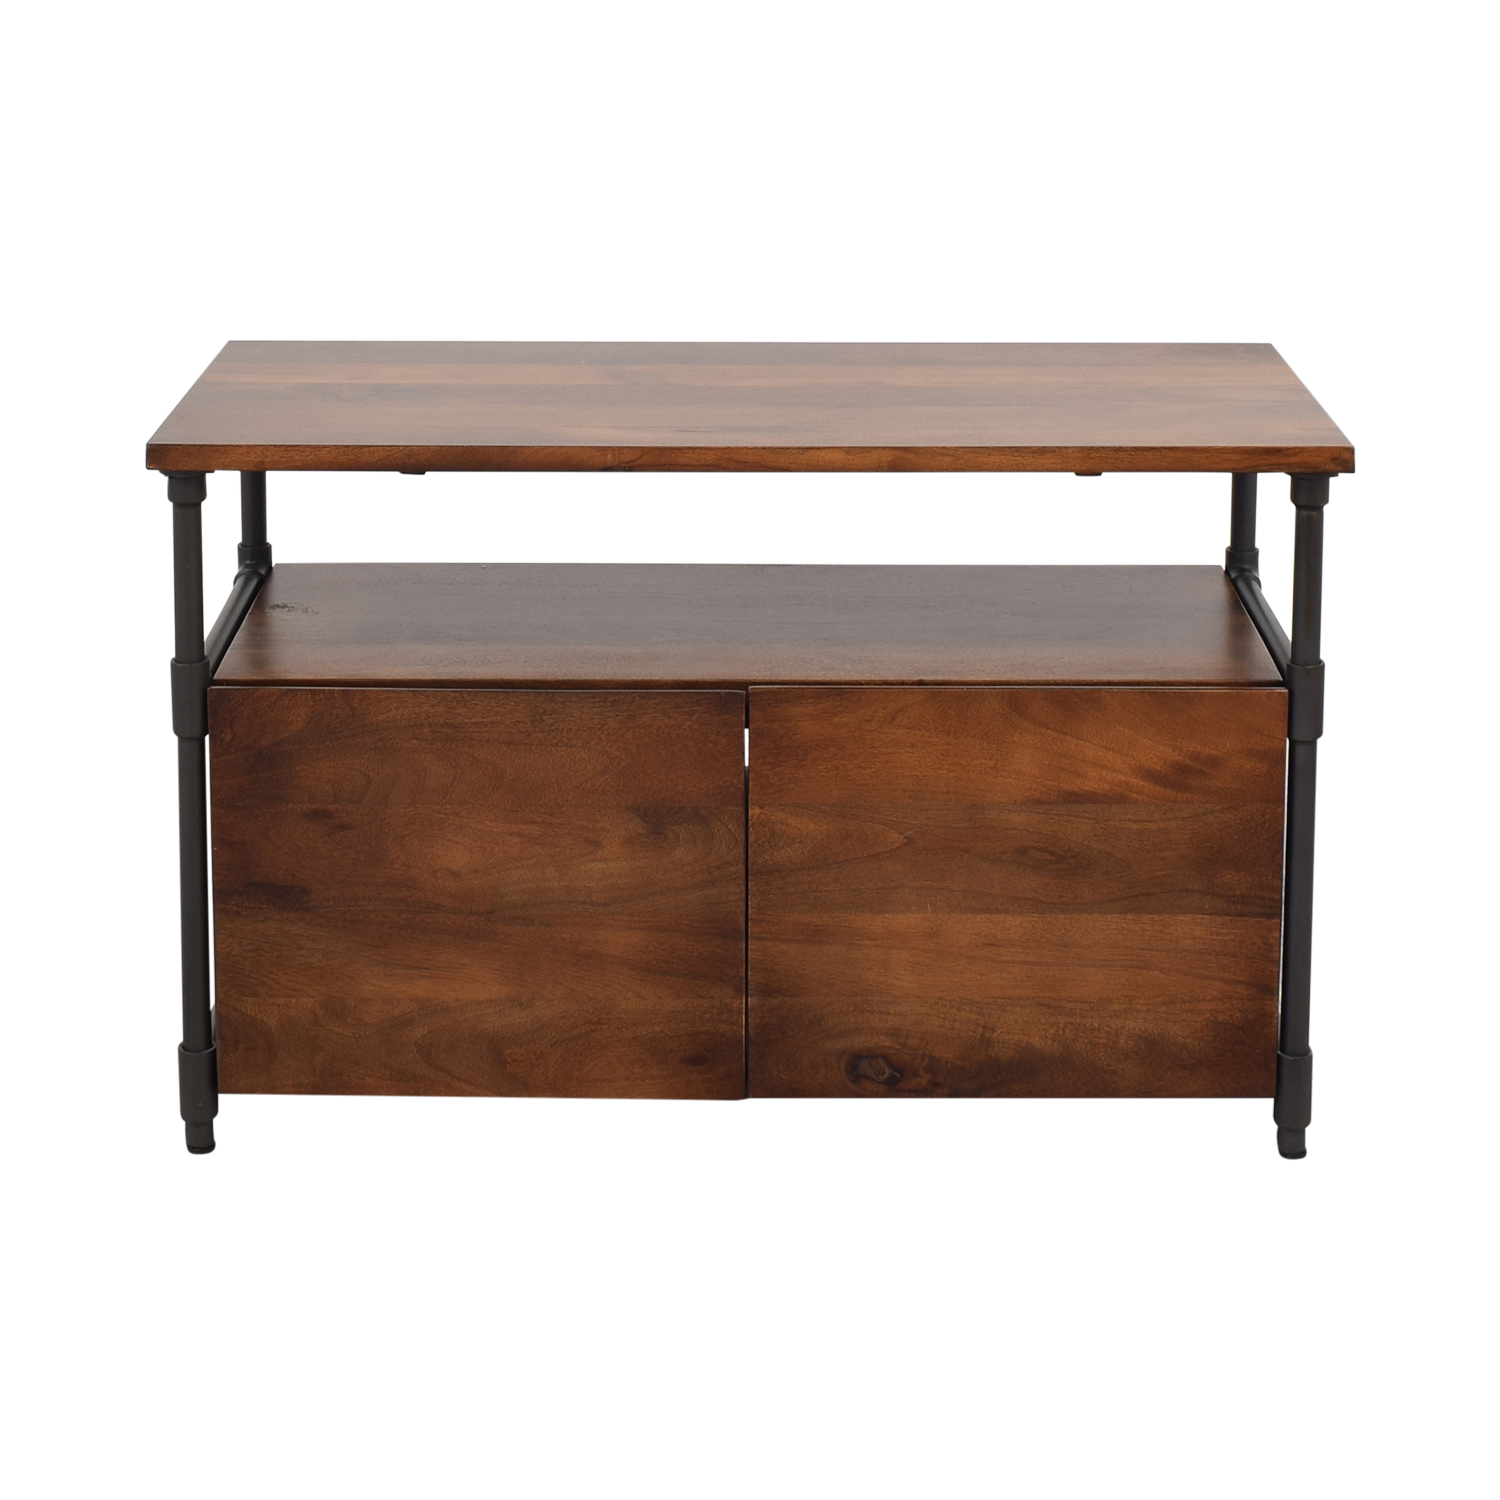 West Elm West Elm Pipe Media Console dimensions